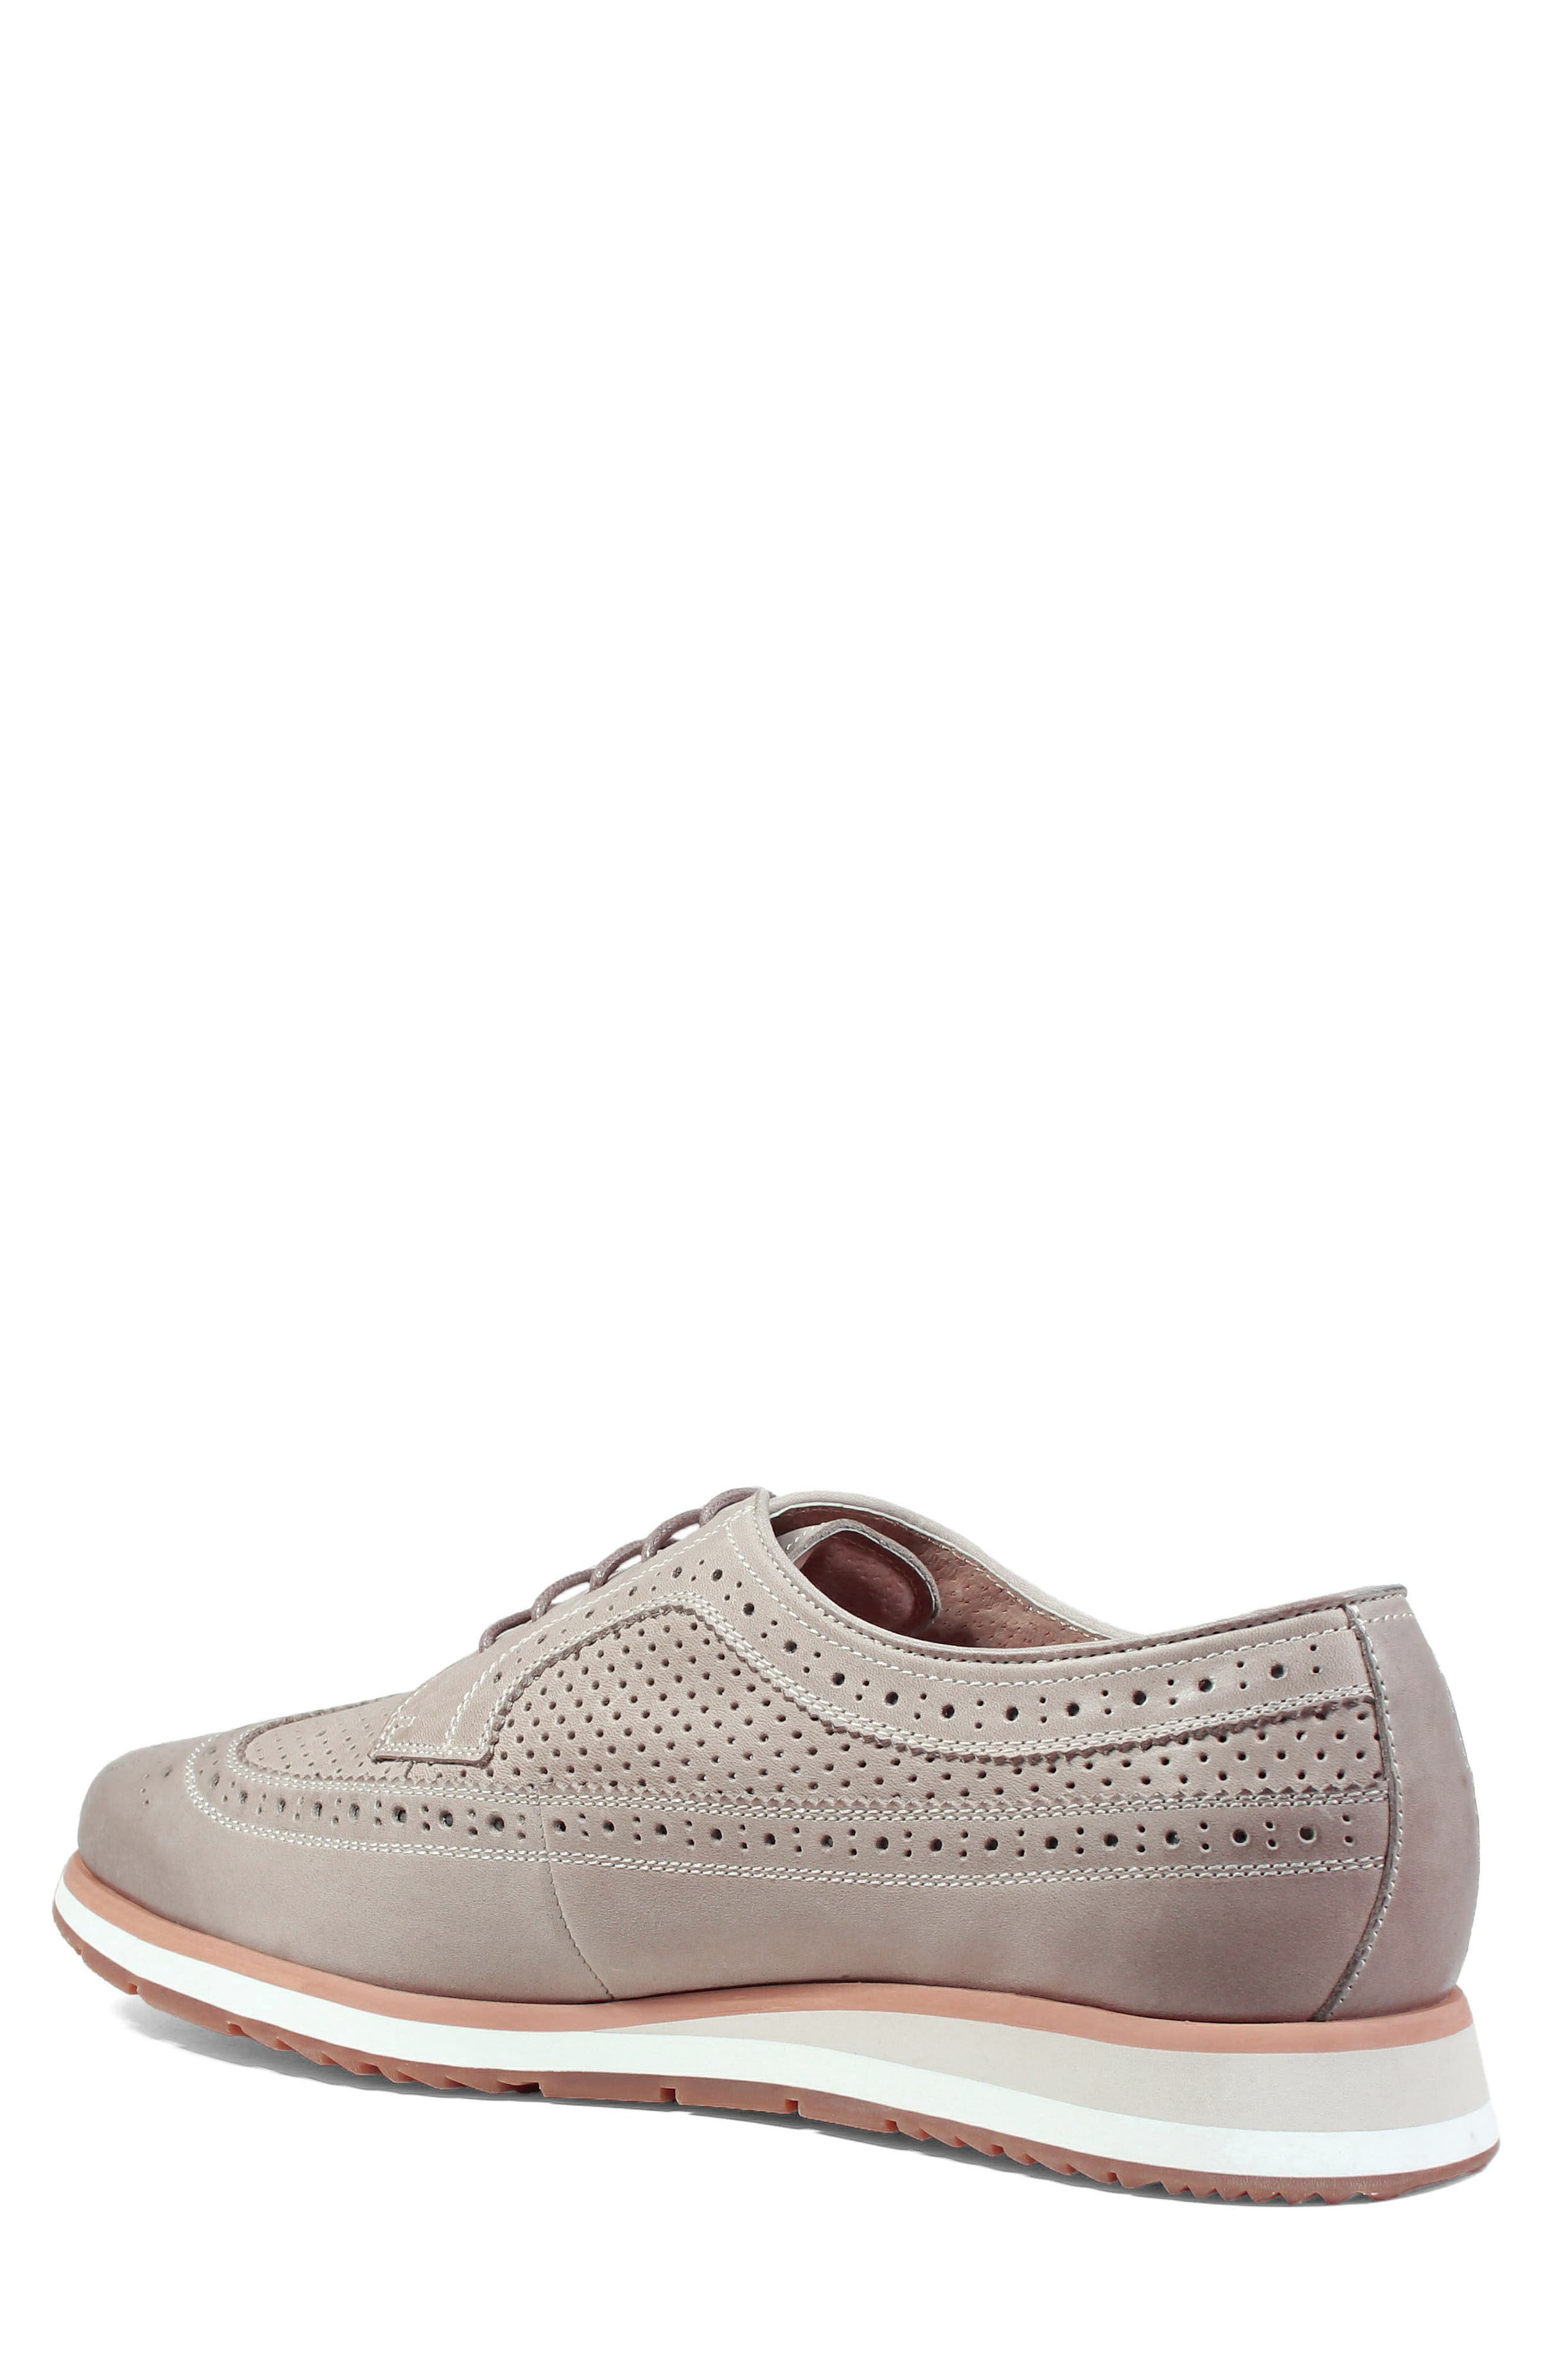 Limited Flux Perforated Wingtip Derby,                             Alternate thumbnail 5, color,